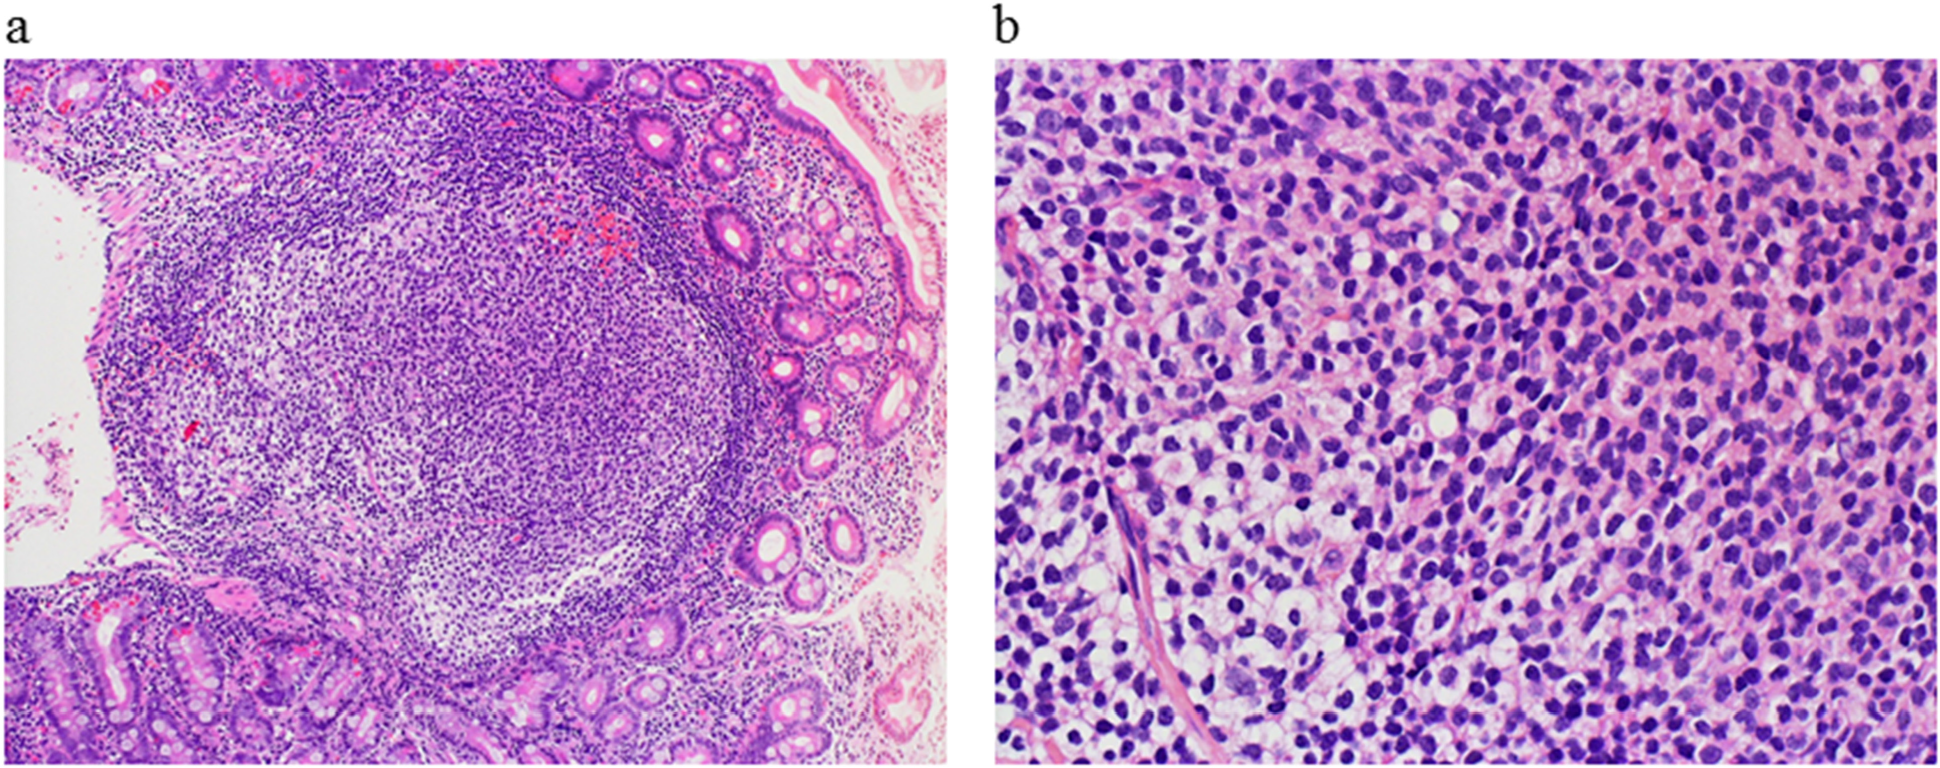 Histological findings of the duodenal tumor at diagnosis.